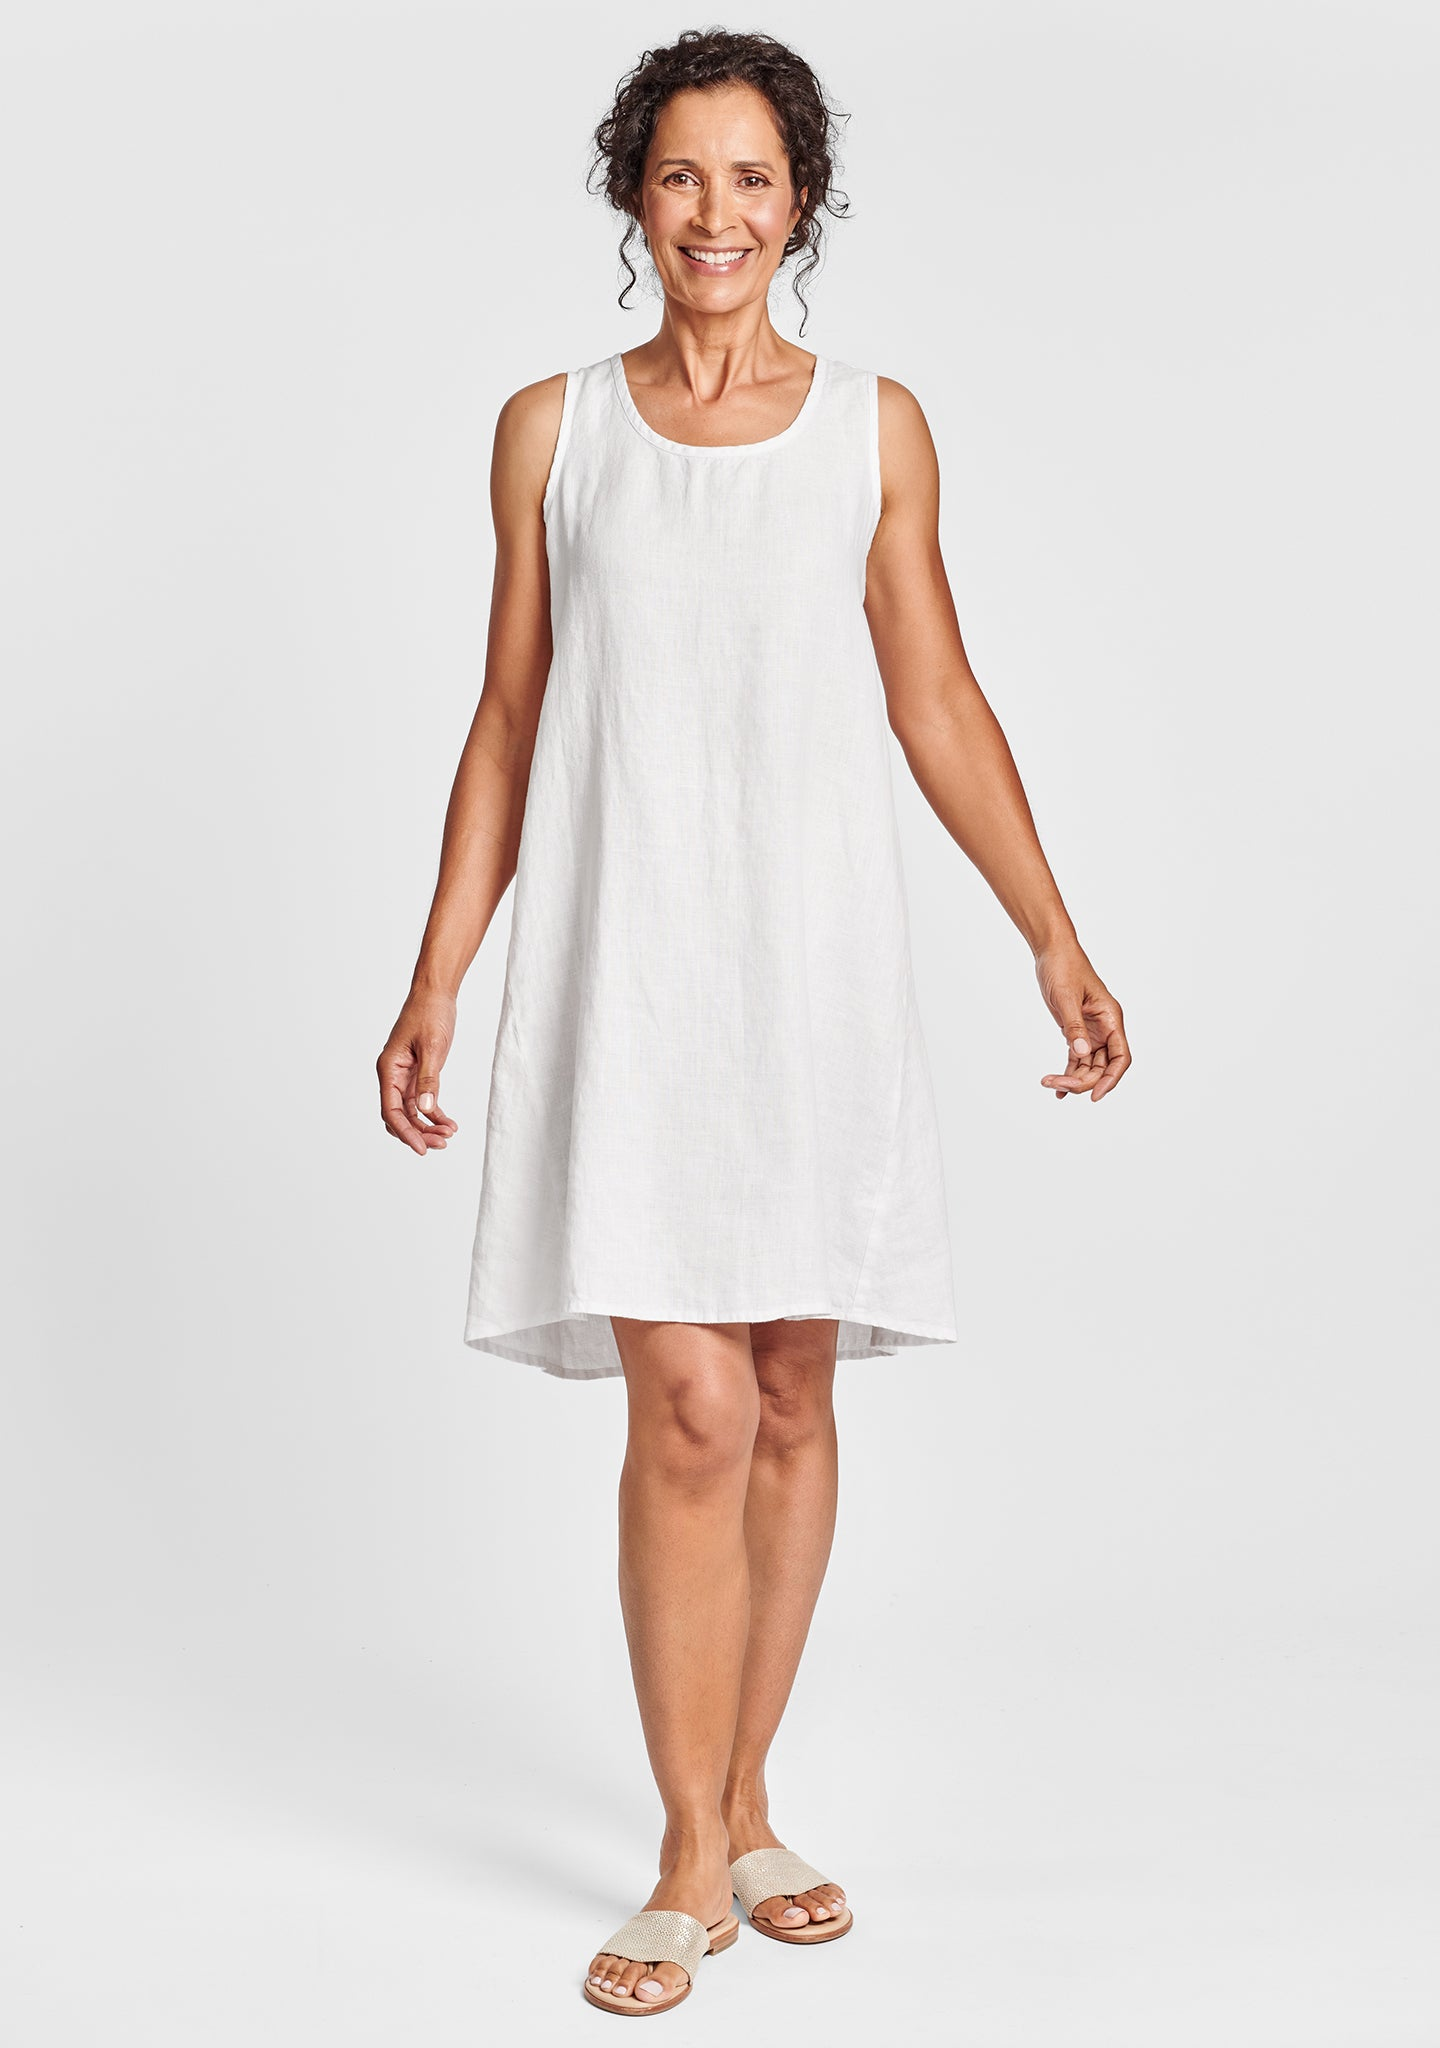 flourish dress linen shift dress white